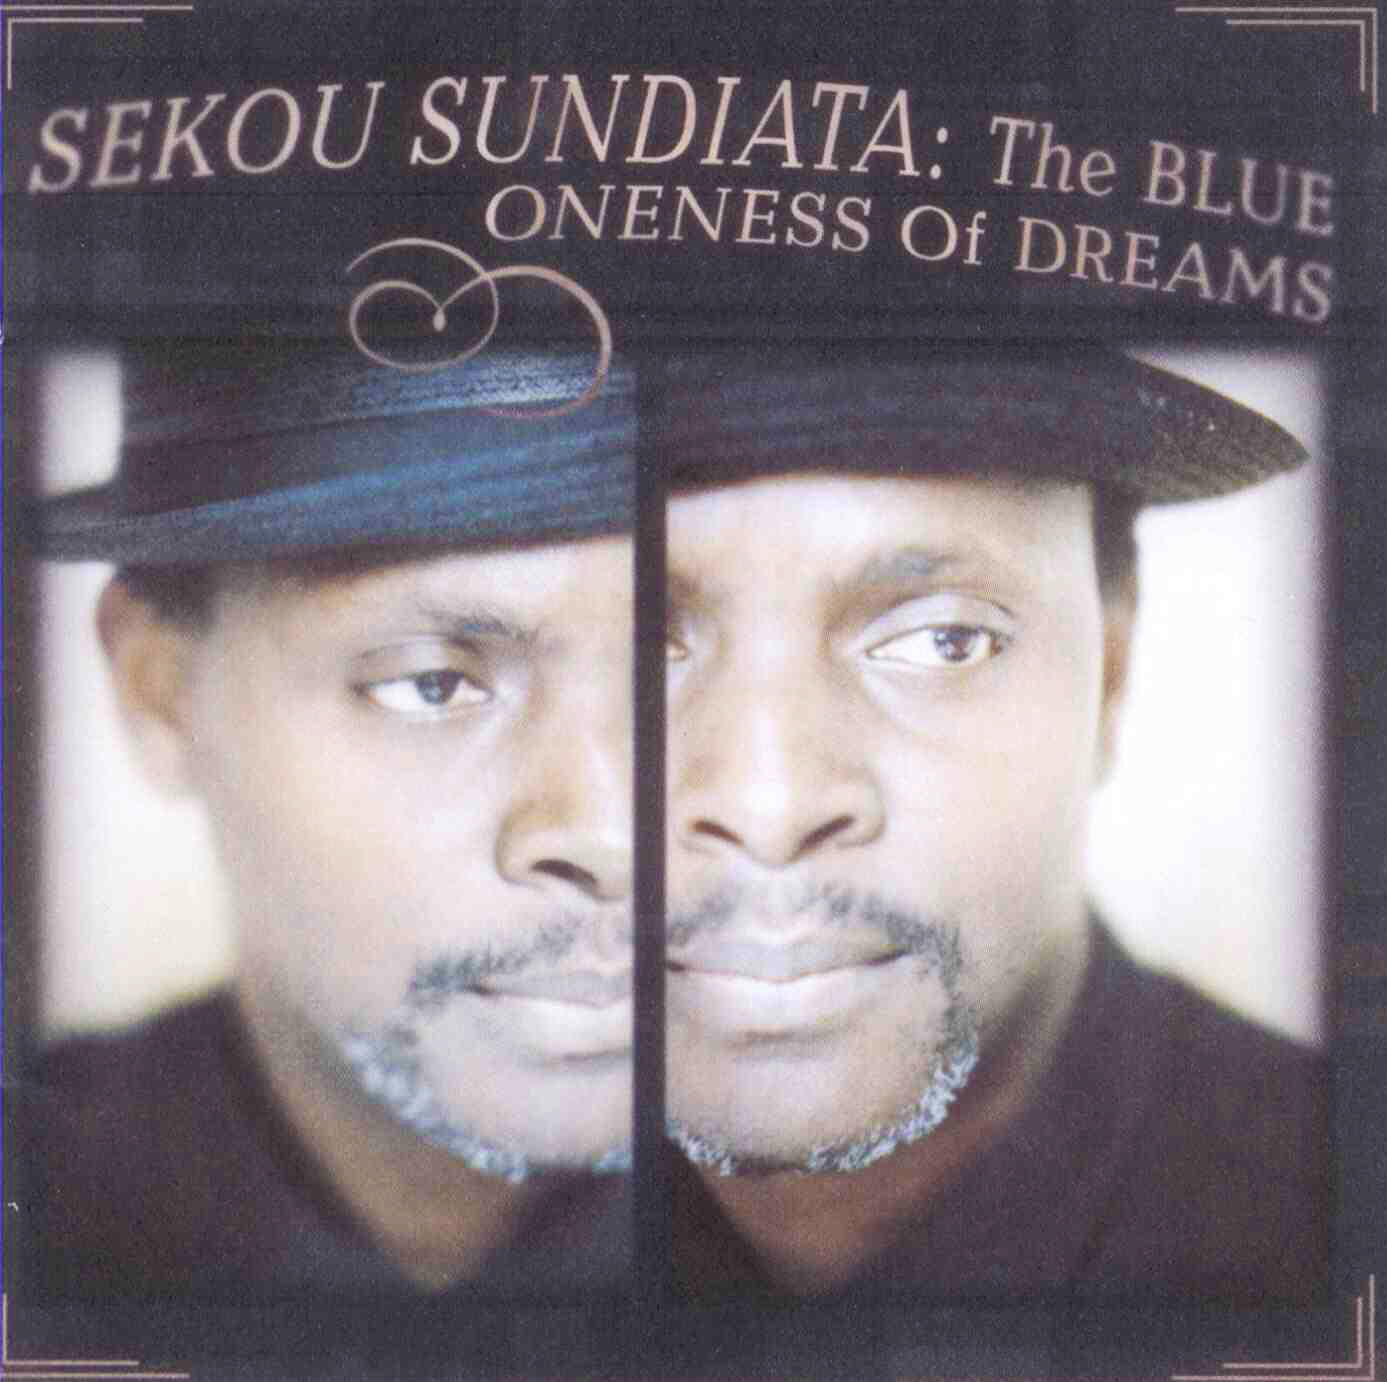 Sekou Sundiata - The Blue Oneness of Dreams - 1997